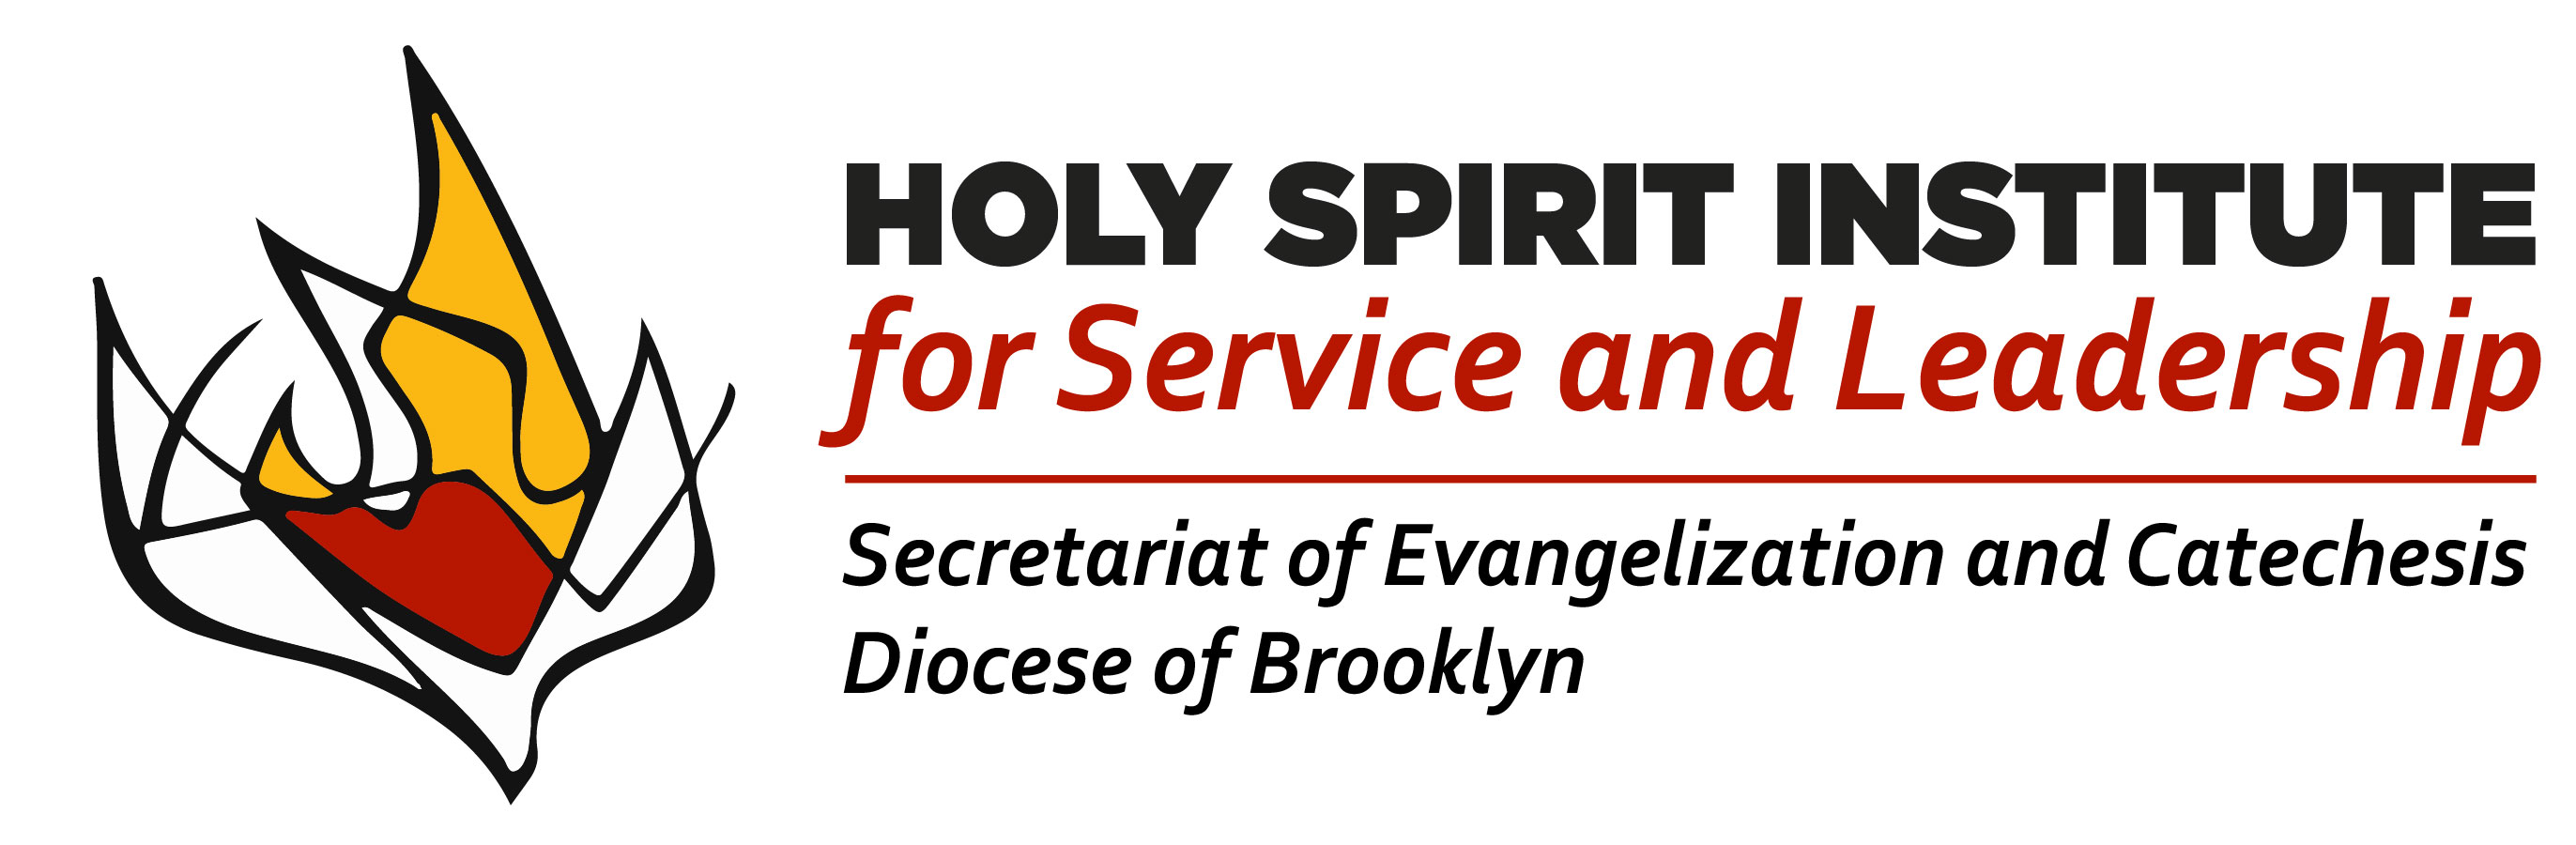 Holy Spirit Institute for Service and Leadership - Diocese